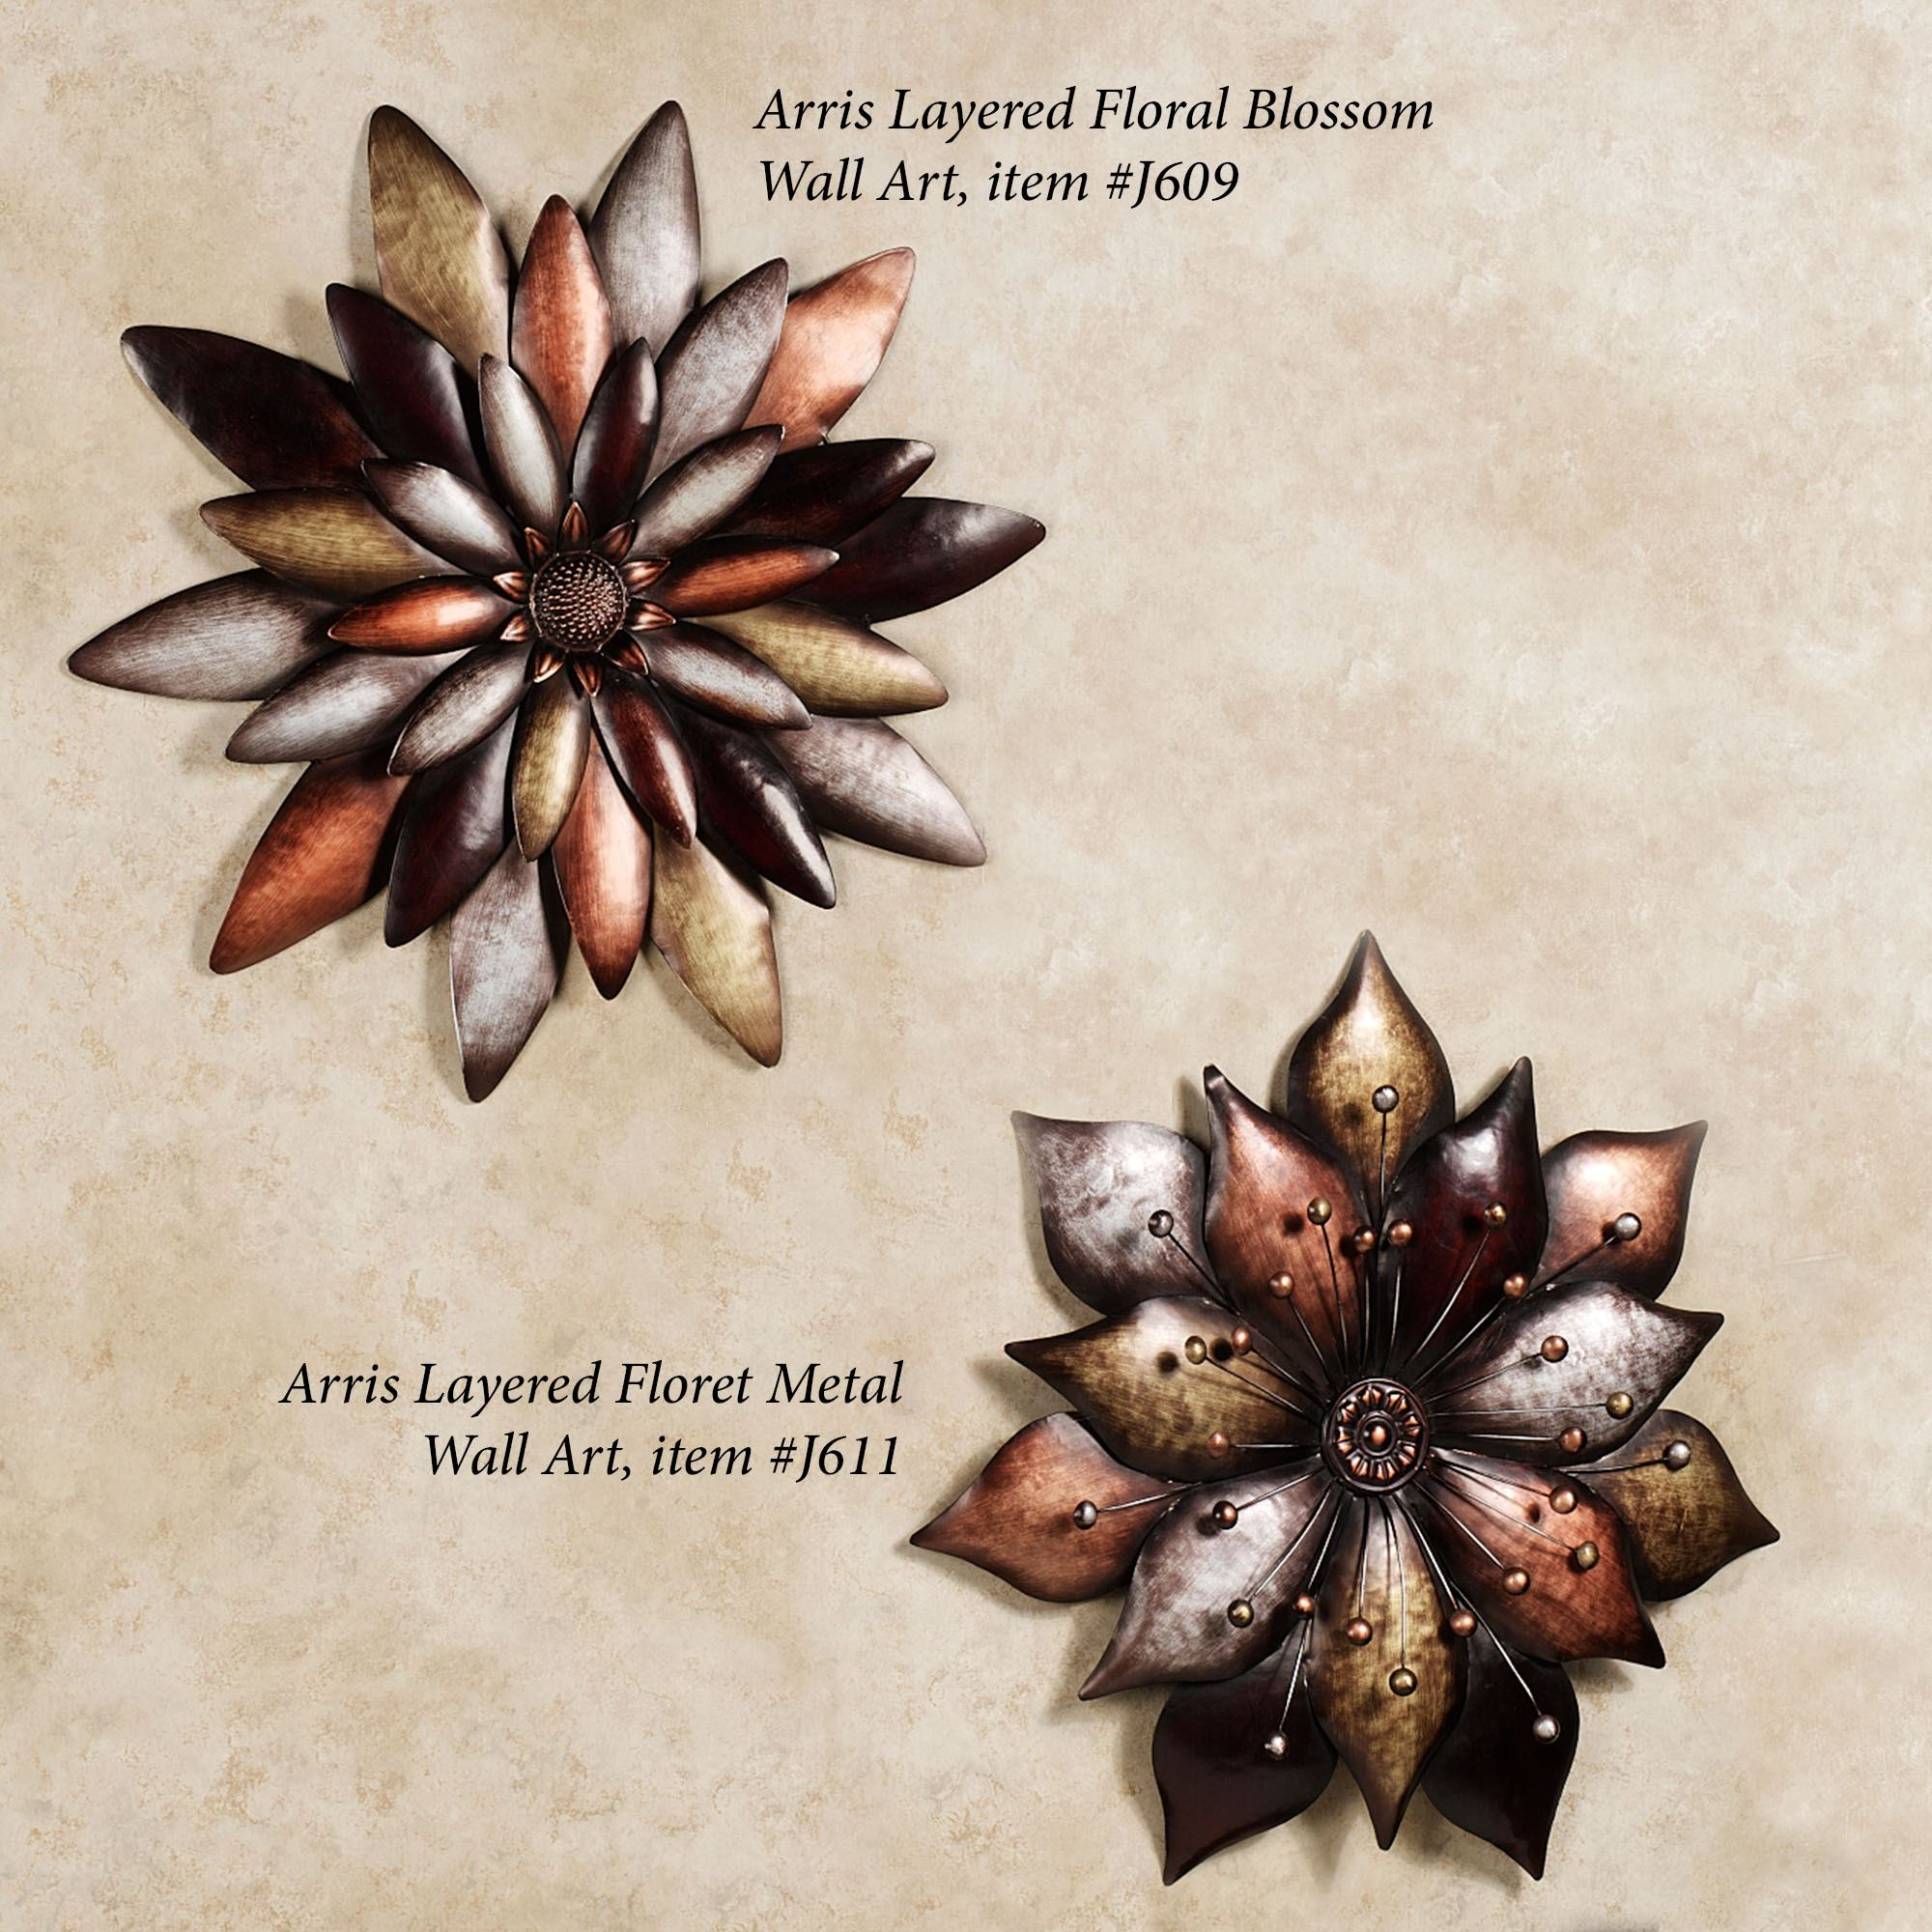 arris layered floral blossom metal wall art